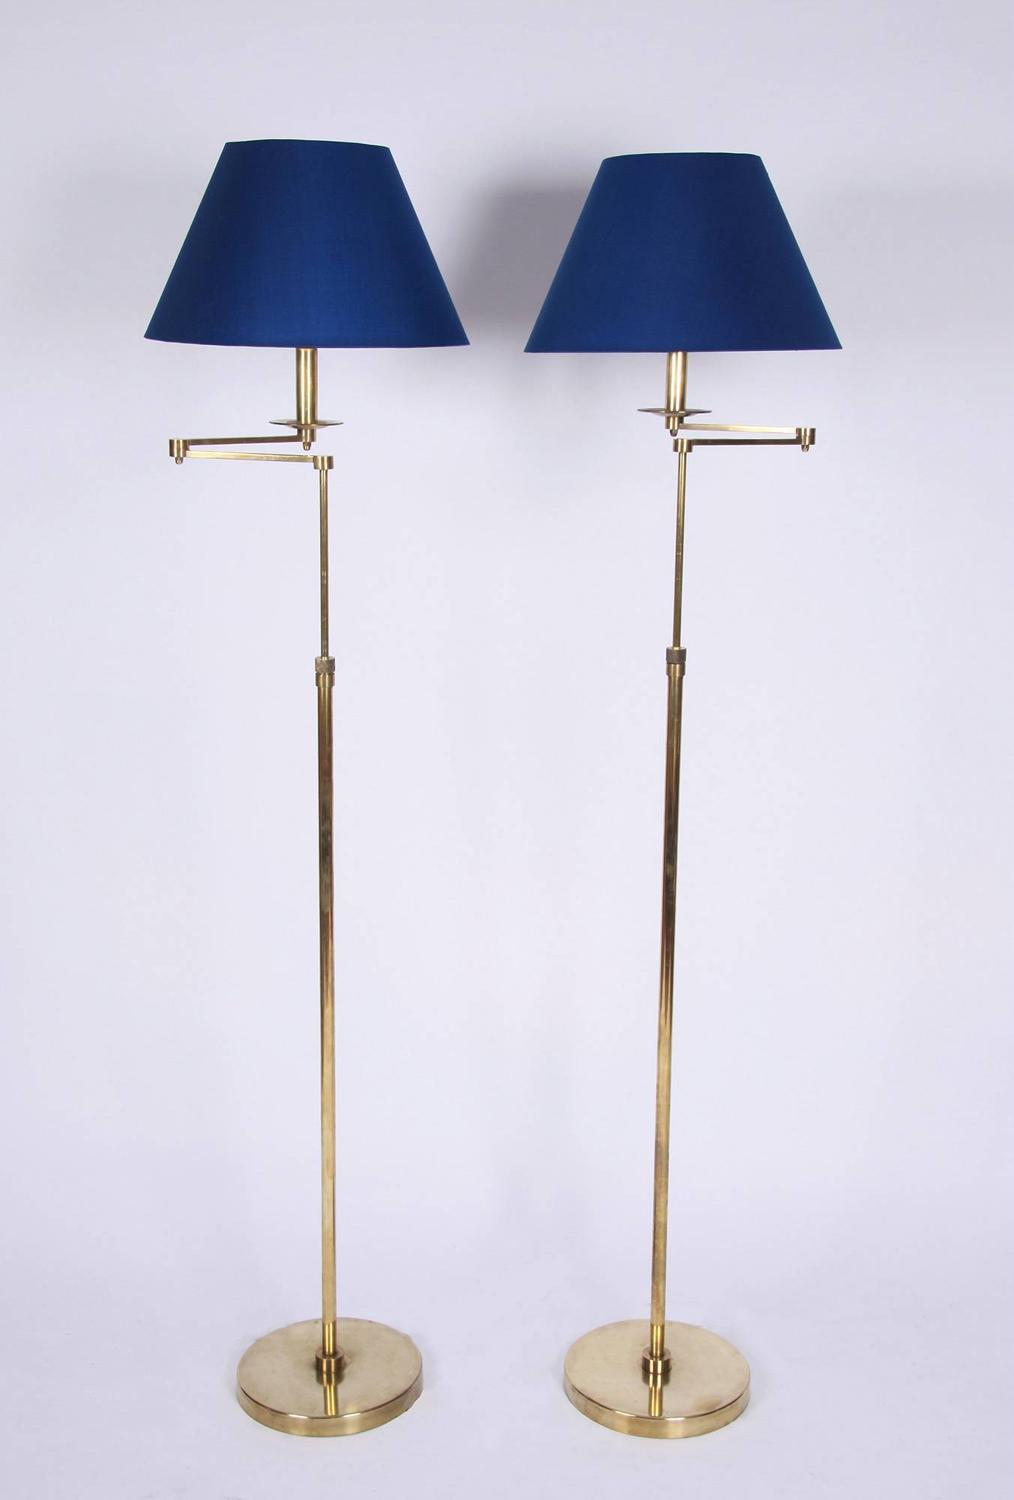 Pair of Adjustable Height Floor Lamps